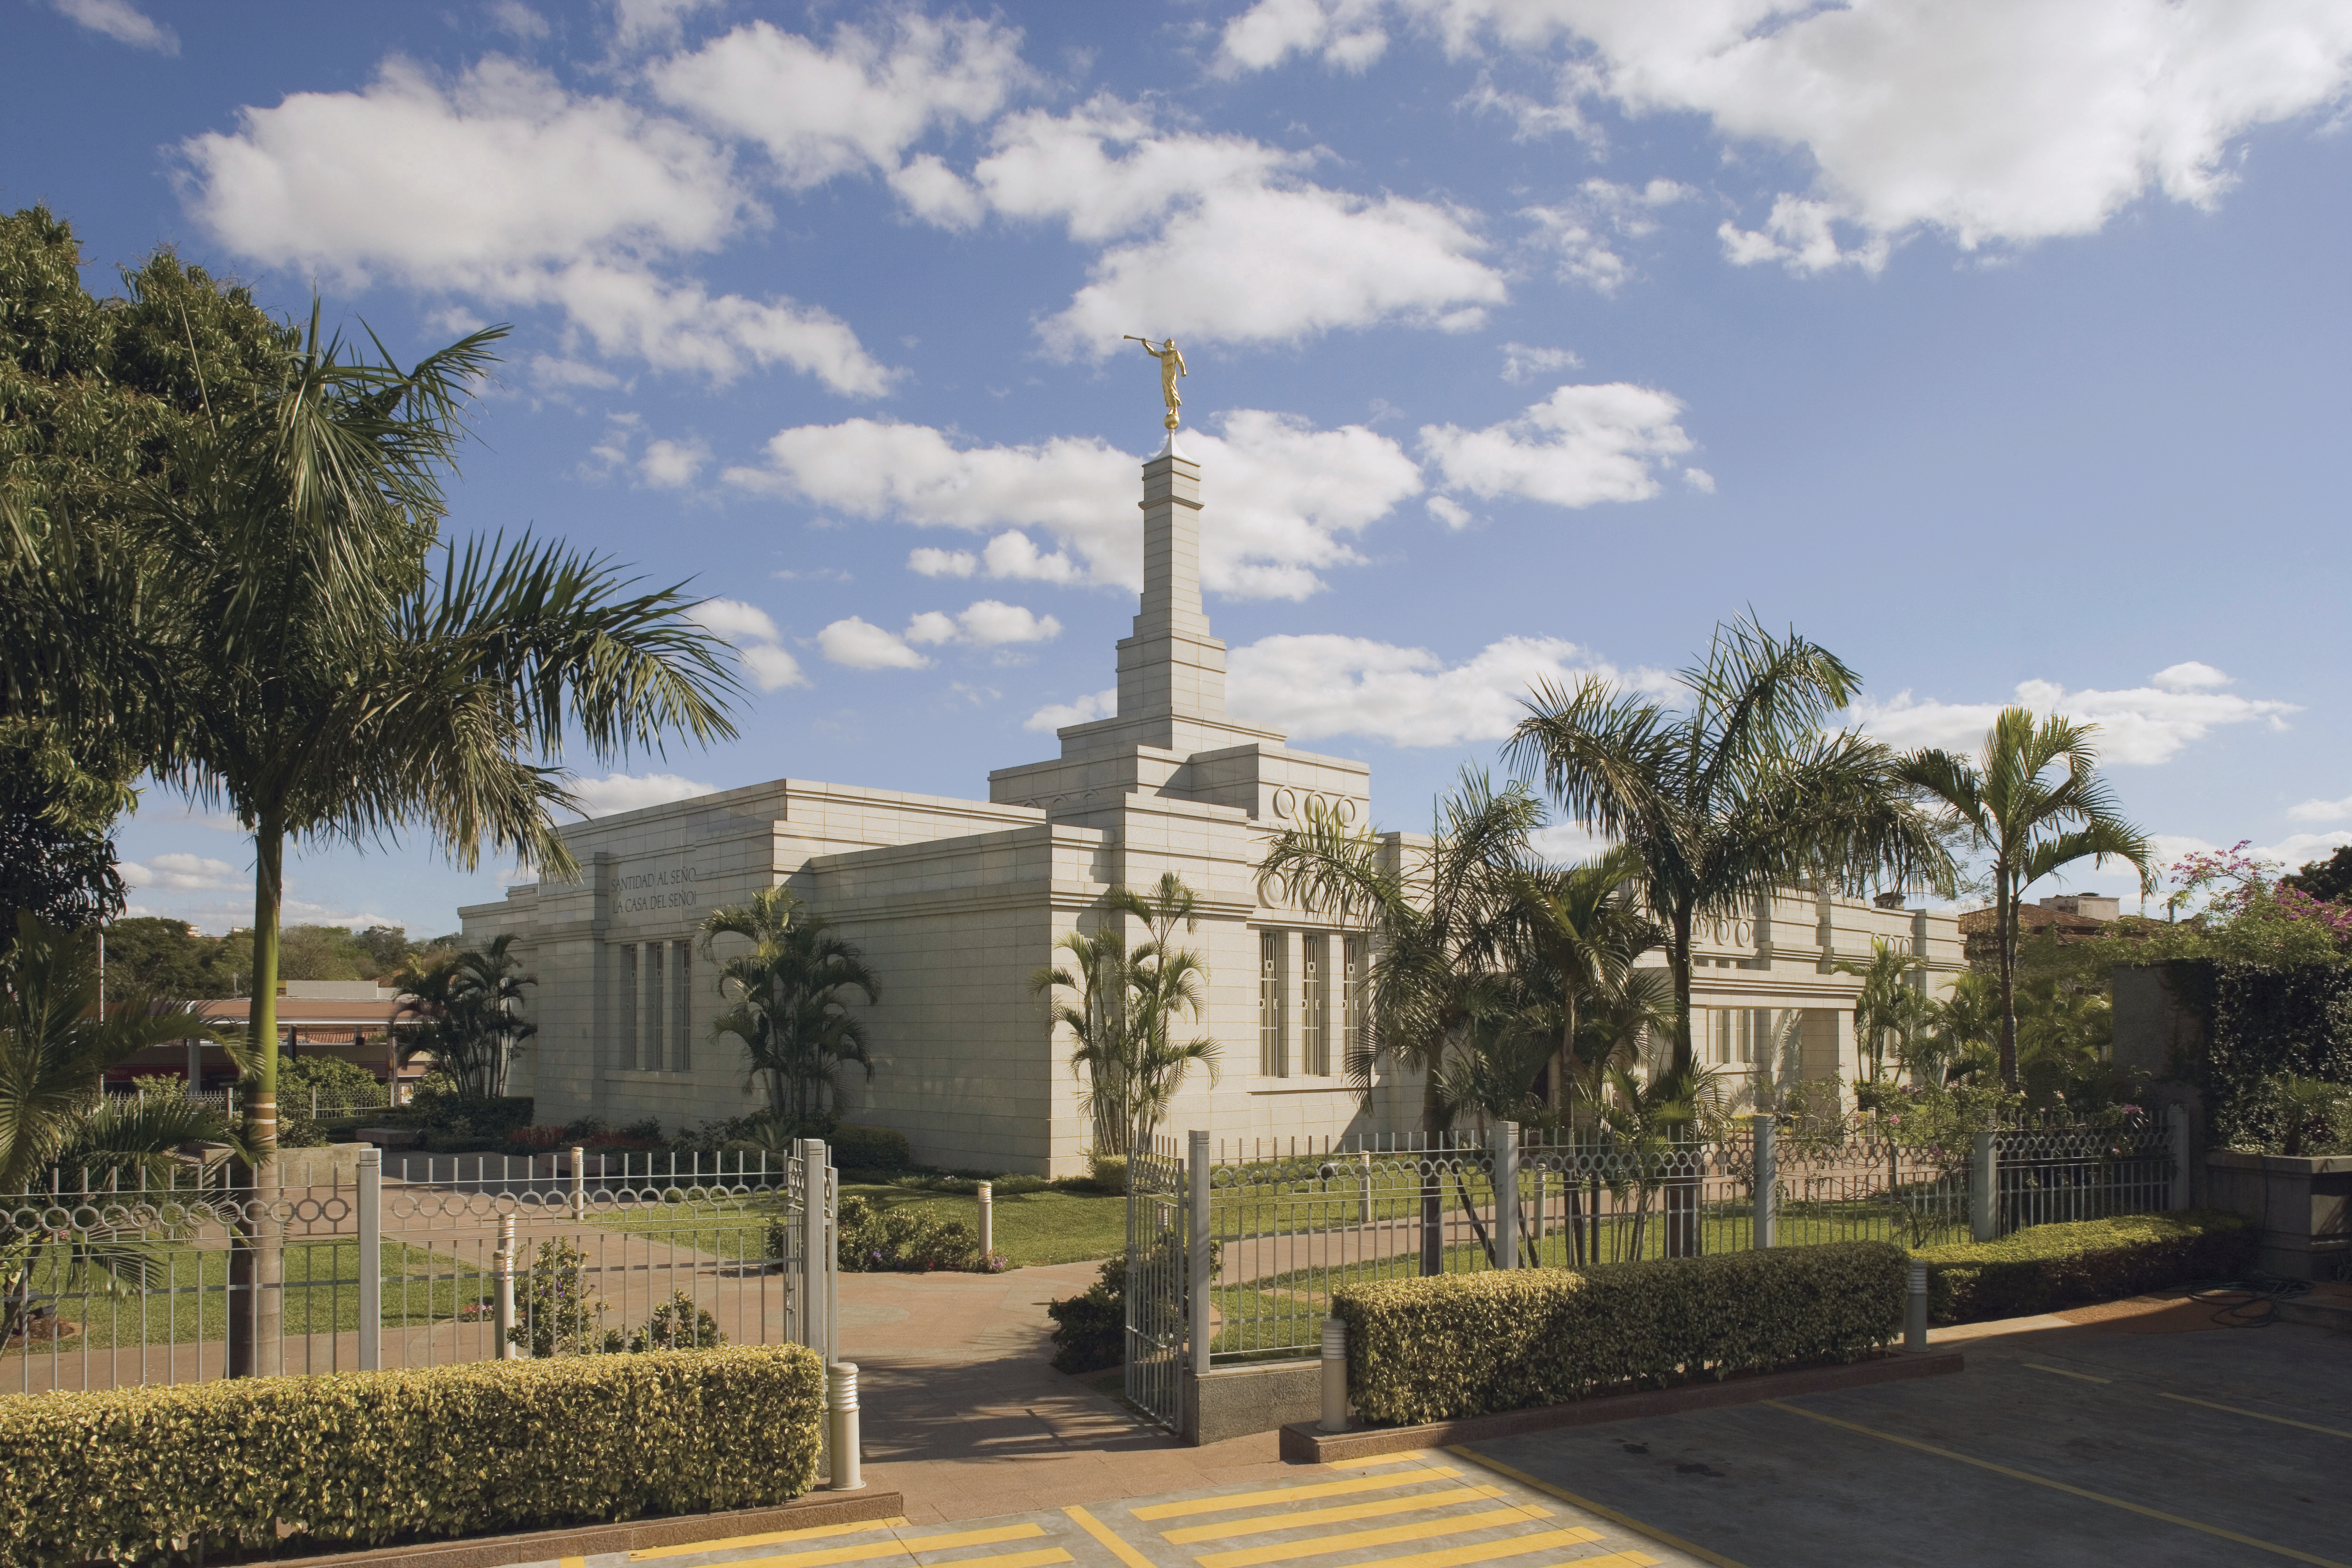 A view of the Asunción Paraguay Temple and grounds during the day.